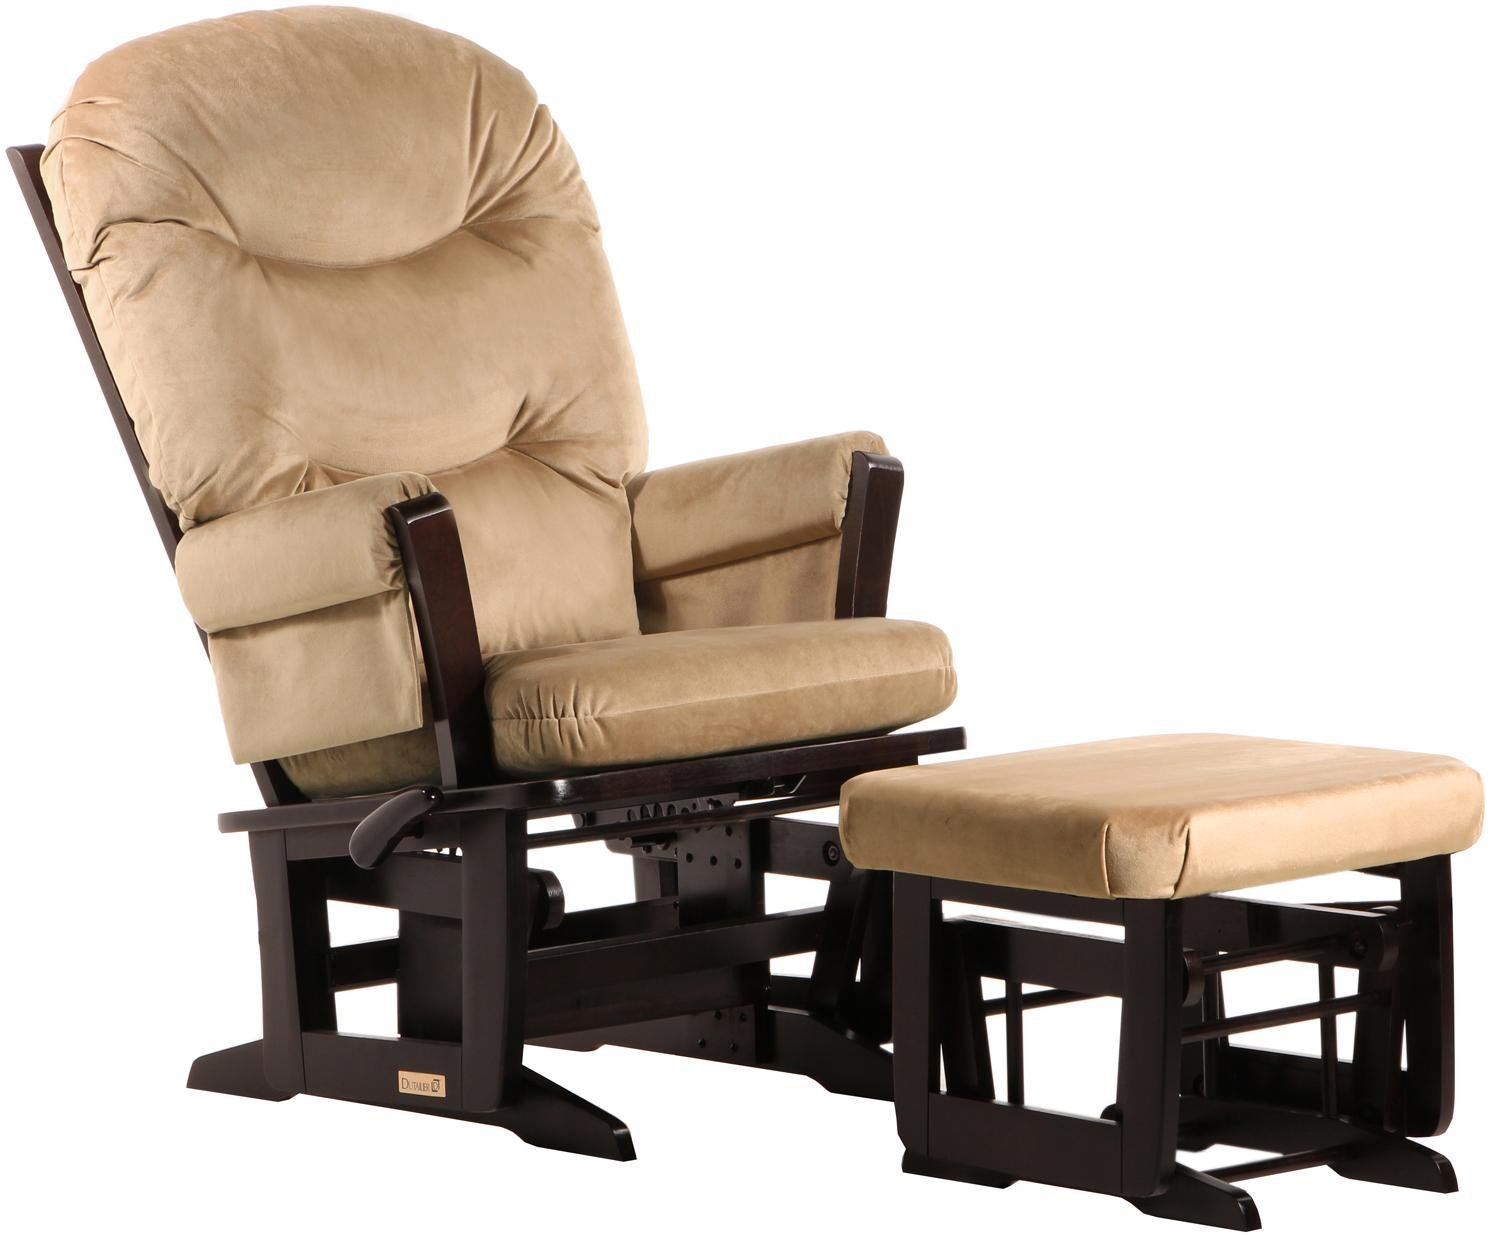 Dutailier Modern 0404 Glider Multiposition-Lock Recline with Nursing Ottoman Included by Dutailier